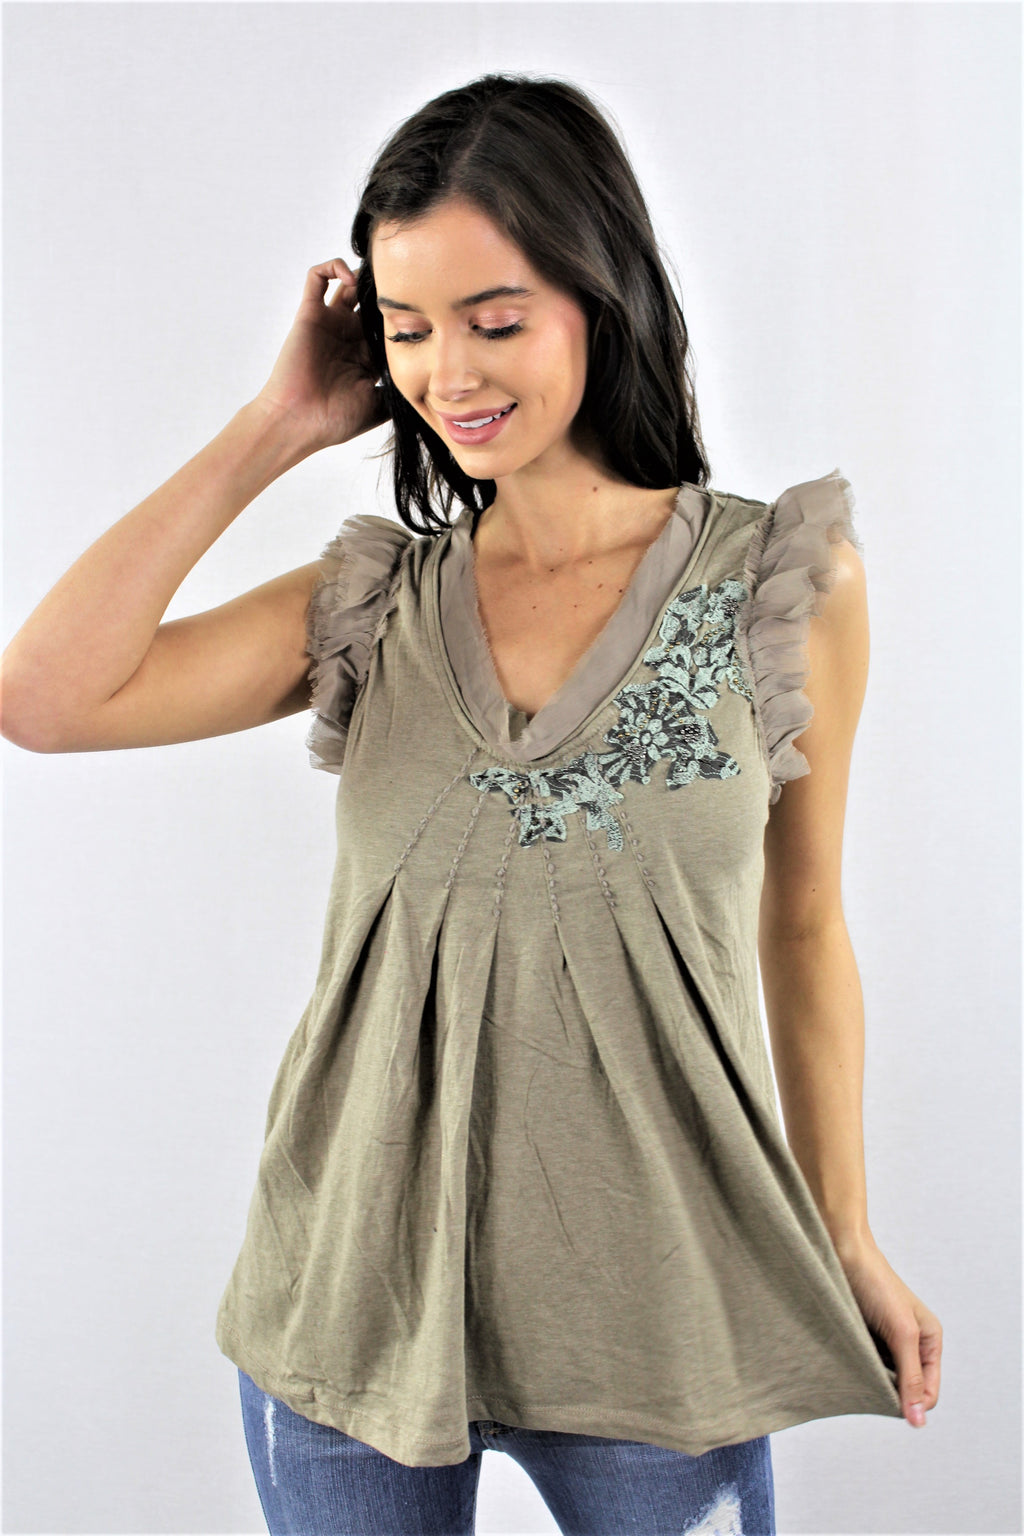 Women's Sleeveless V Neck Top with Chiffon Lining